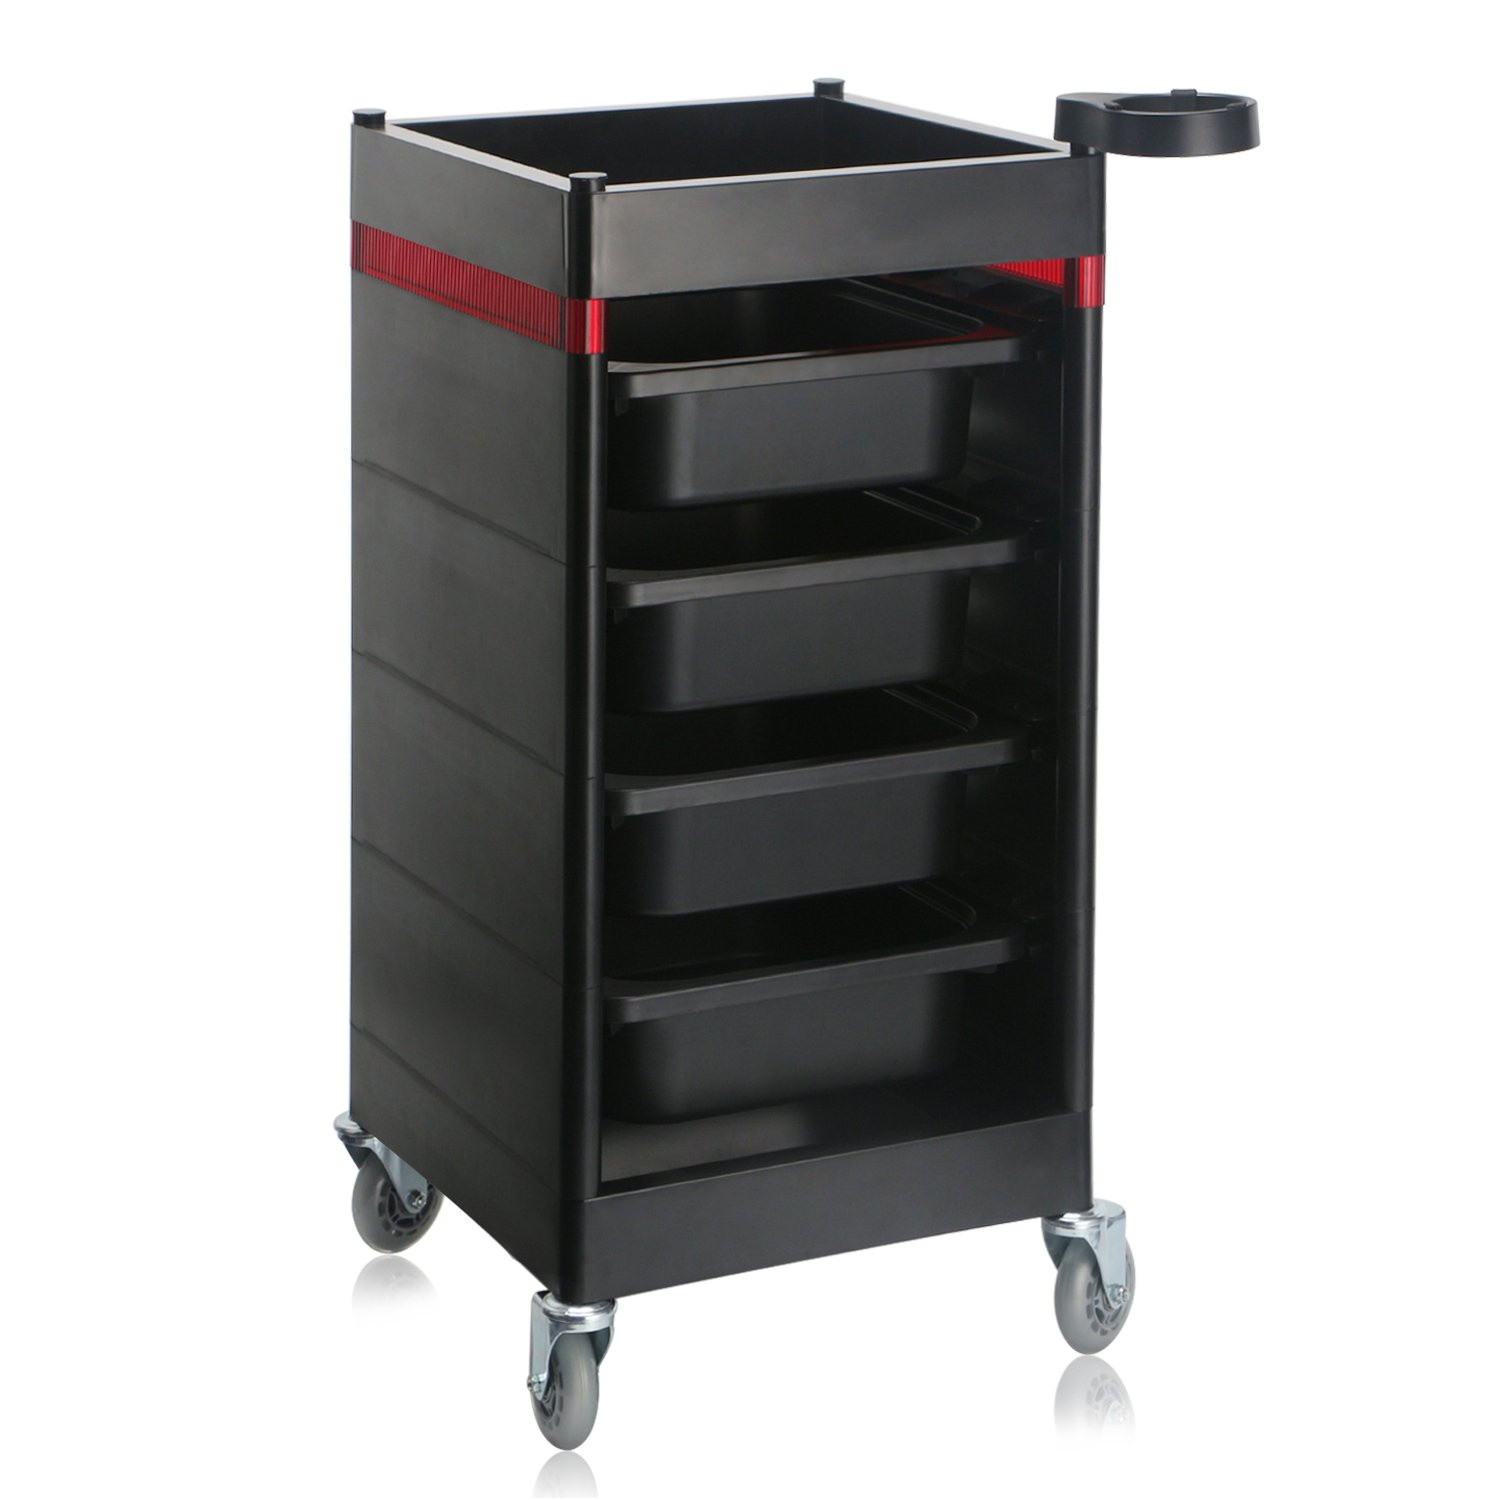 Segbeauty Storage Containers Utility Cart for Beauty Salon Spa Barber Shop, Drawer Organizer Trolley with Casters for Rolling, Manicure Pedicure Makeup Organizer Dolly